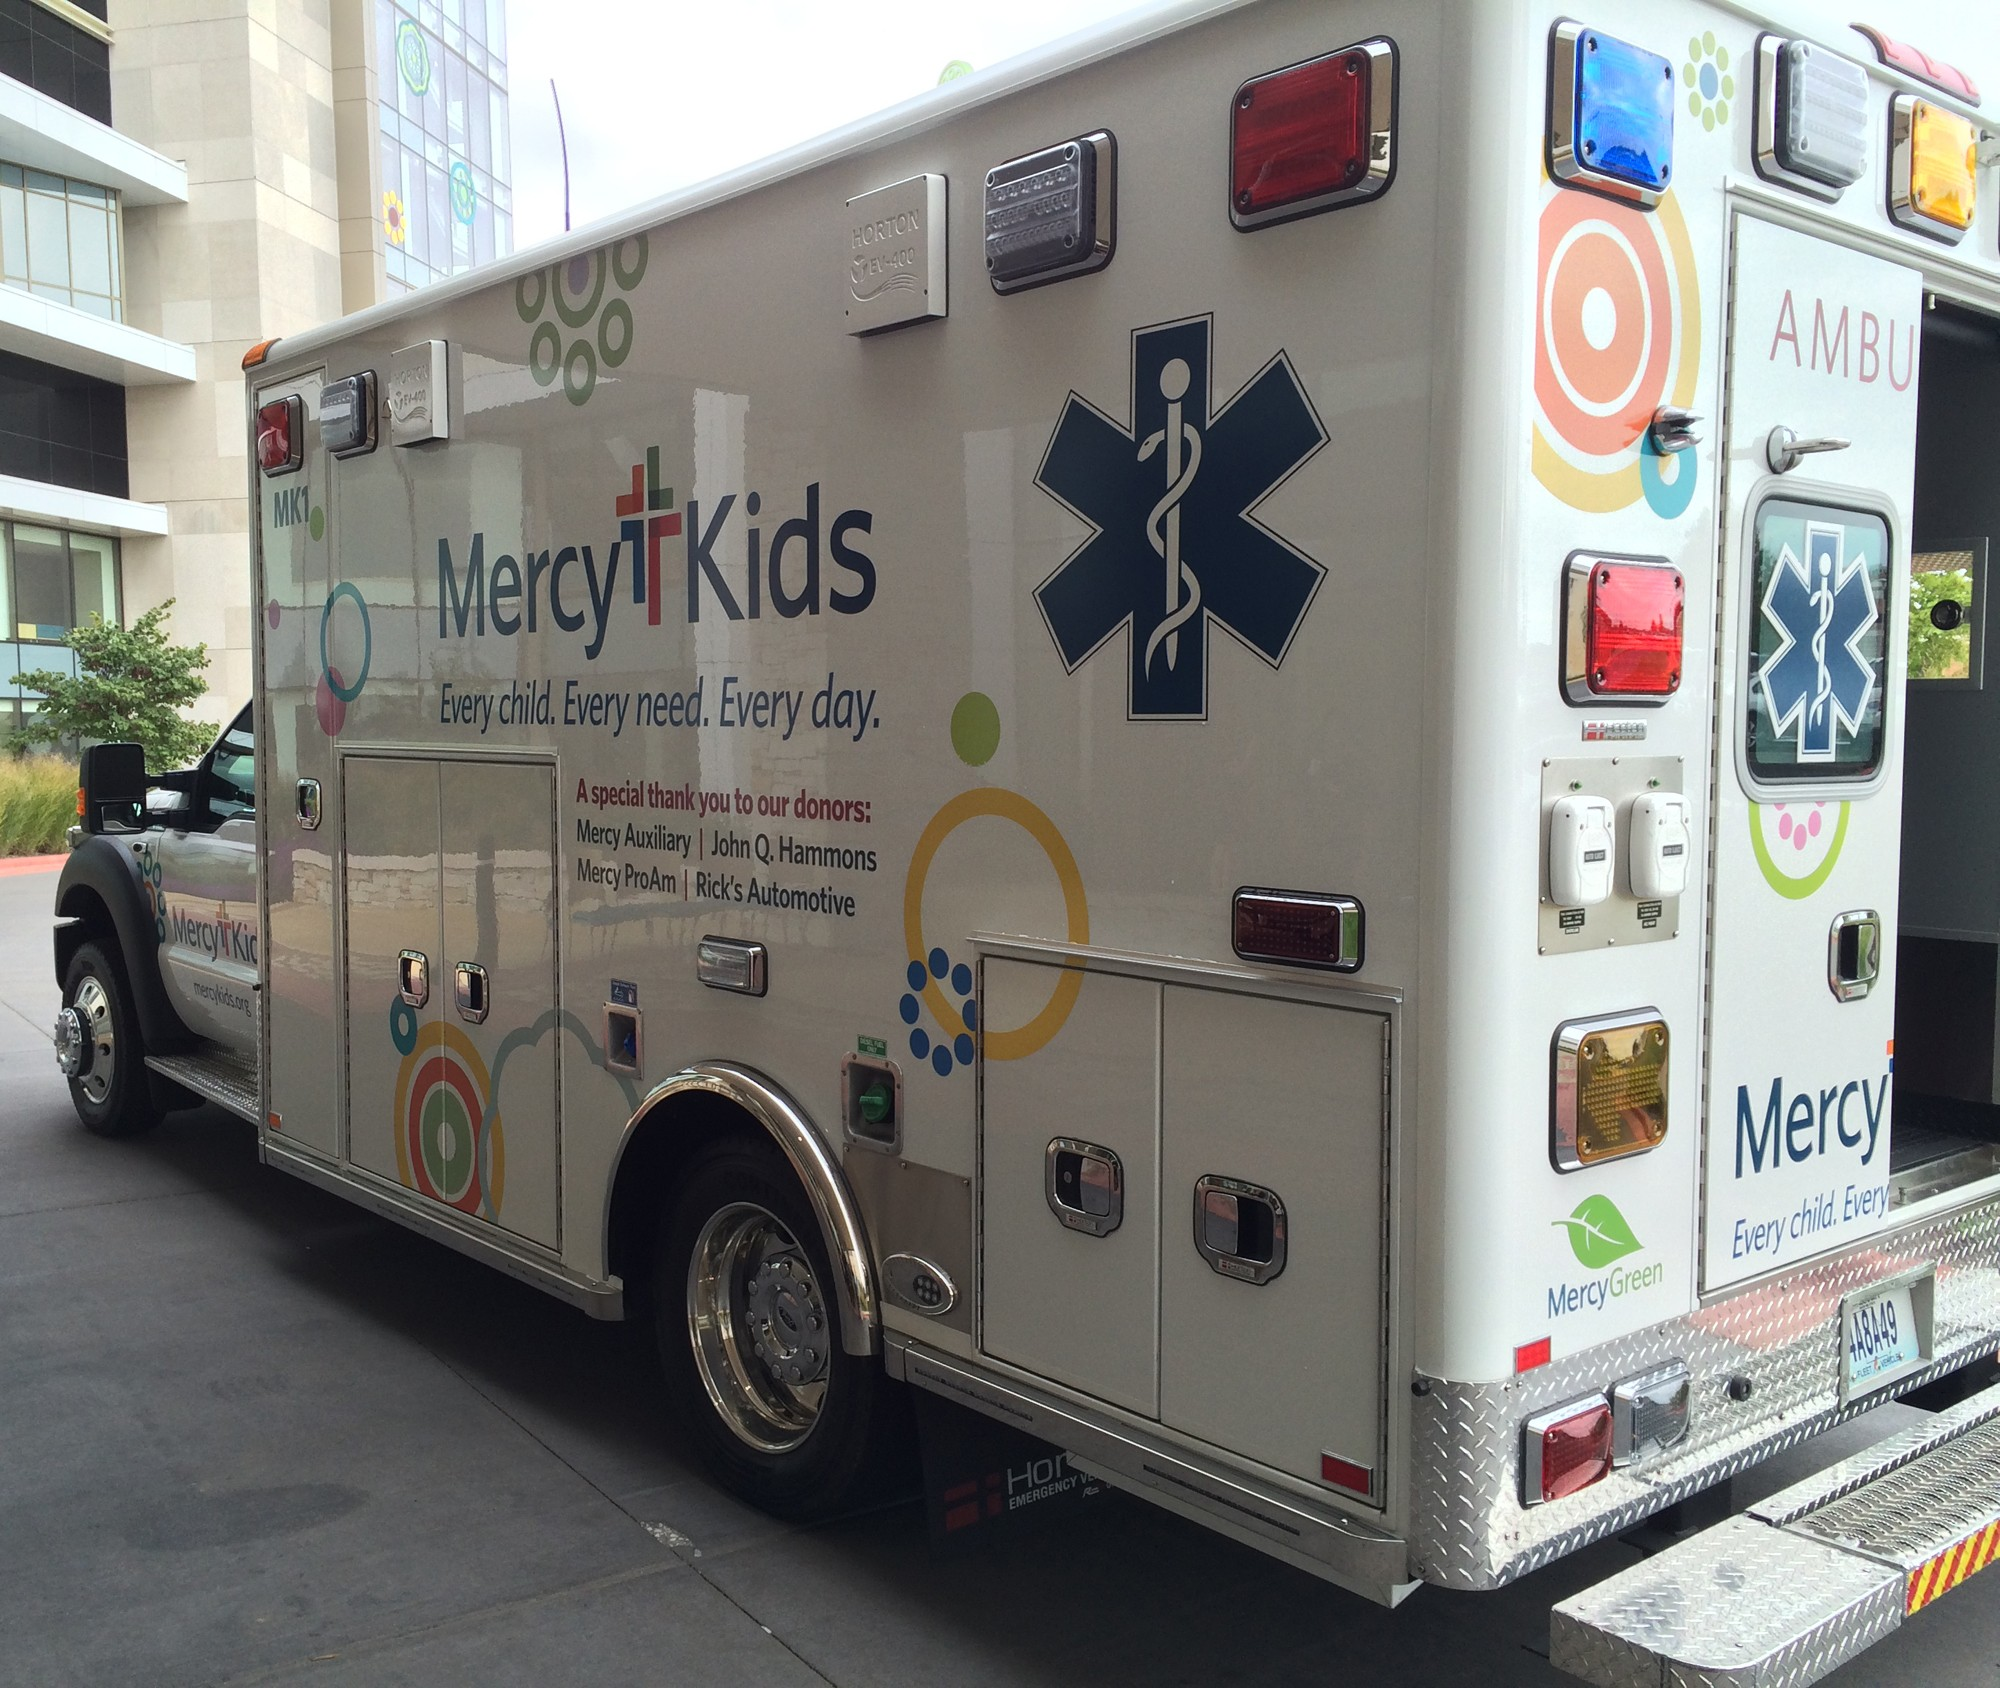 The Mercy Kids Transport Unit has equipment specially designed for kids from premature babies all the way to 17 years old. Another great feature: there's room for parents to ride with their children in the back, easing anxiety for both.